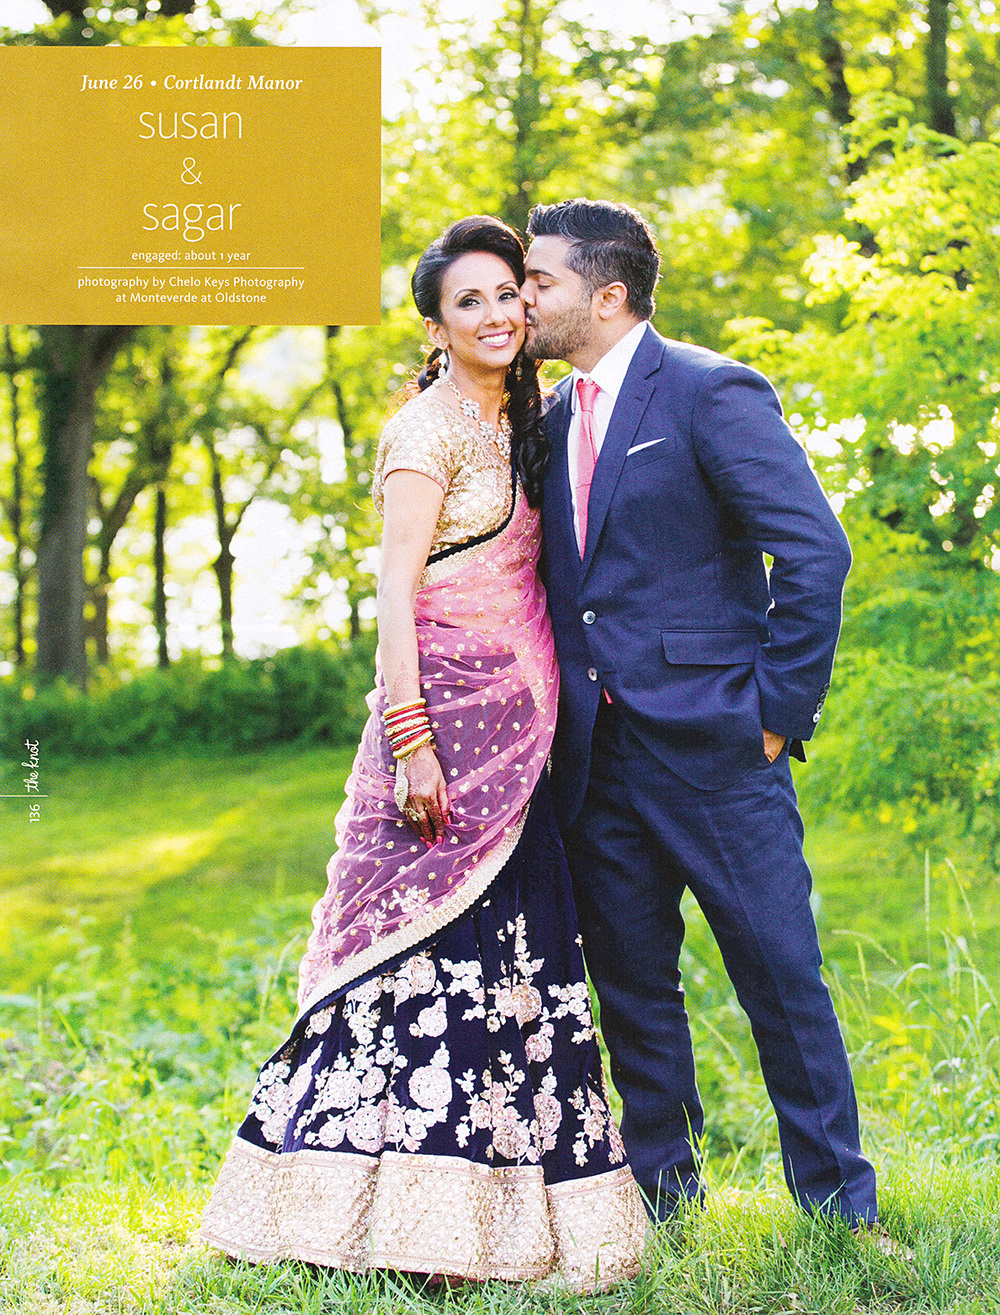 Top New York Wedding Photographer, Featured in the Knot New York.